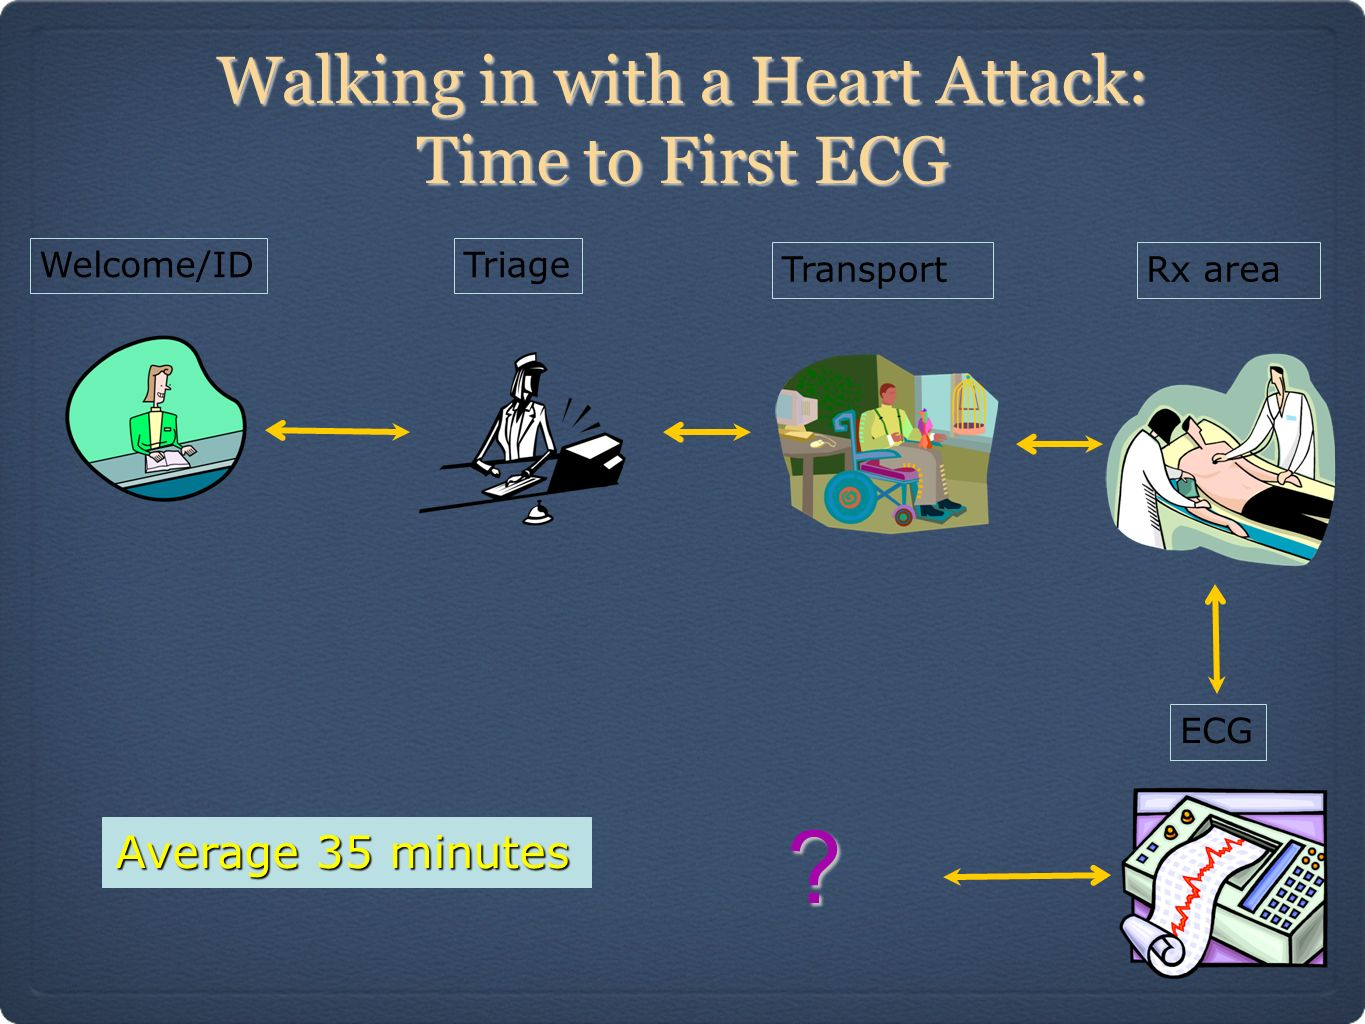 Walking in with a Heart Attack: Time to First ECG